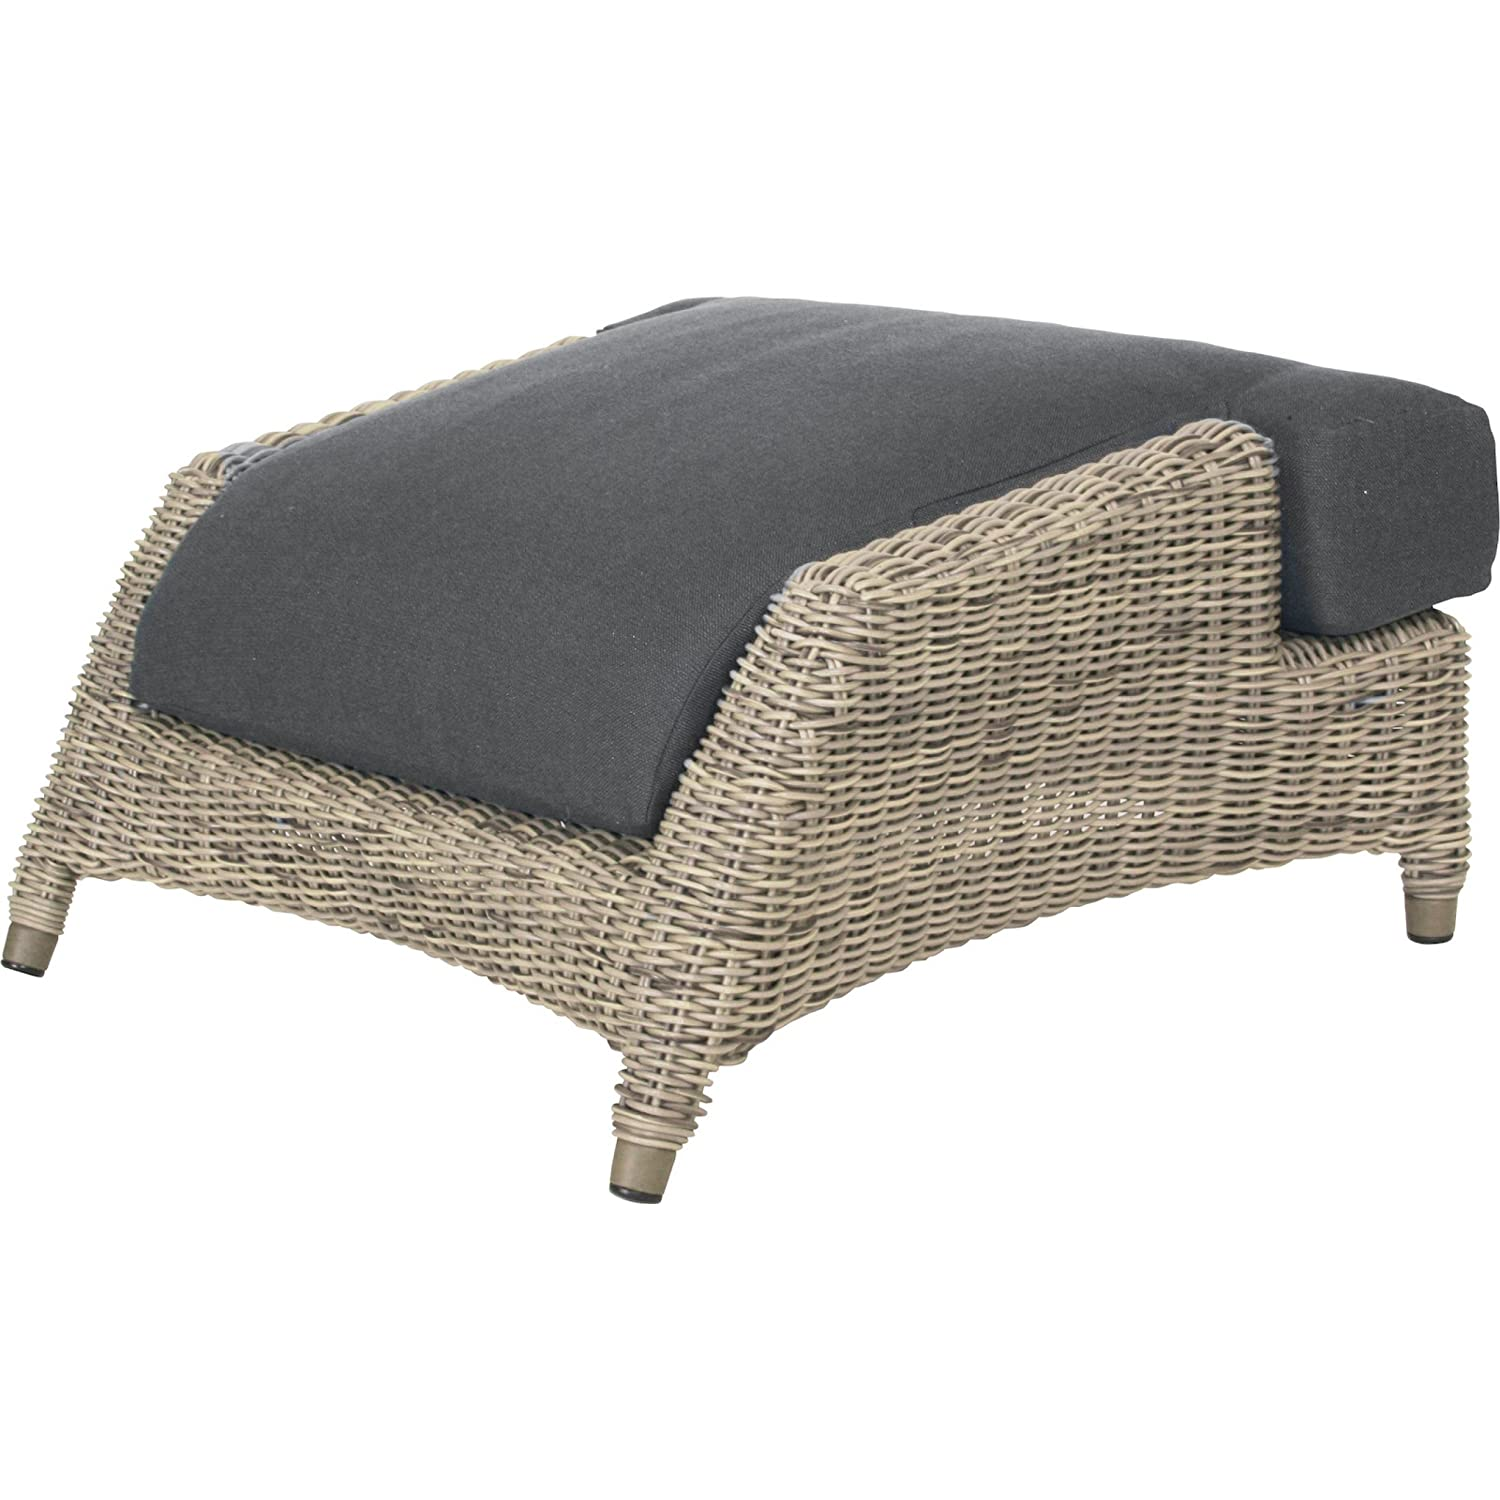 4Seasons Outdoor Valentine Fußhocker Polyrattan pure inkl Kissen Footstool